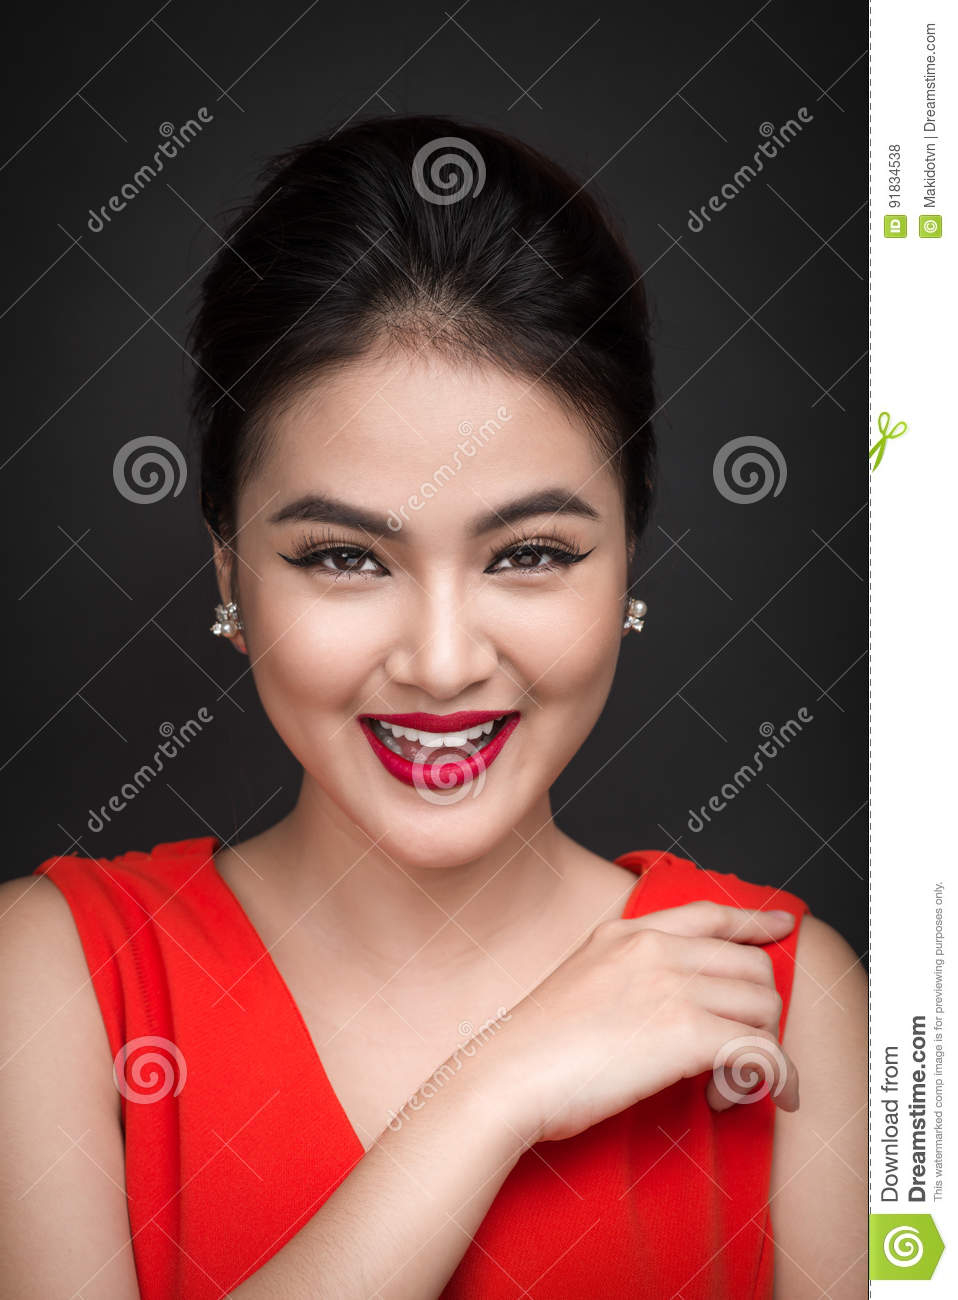 Closeup of beautiful girl with bright makeup and red lips. Beauty fashion asian woman.